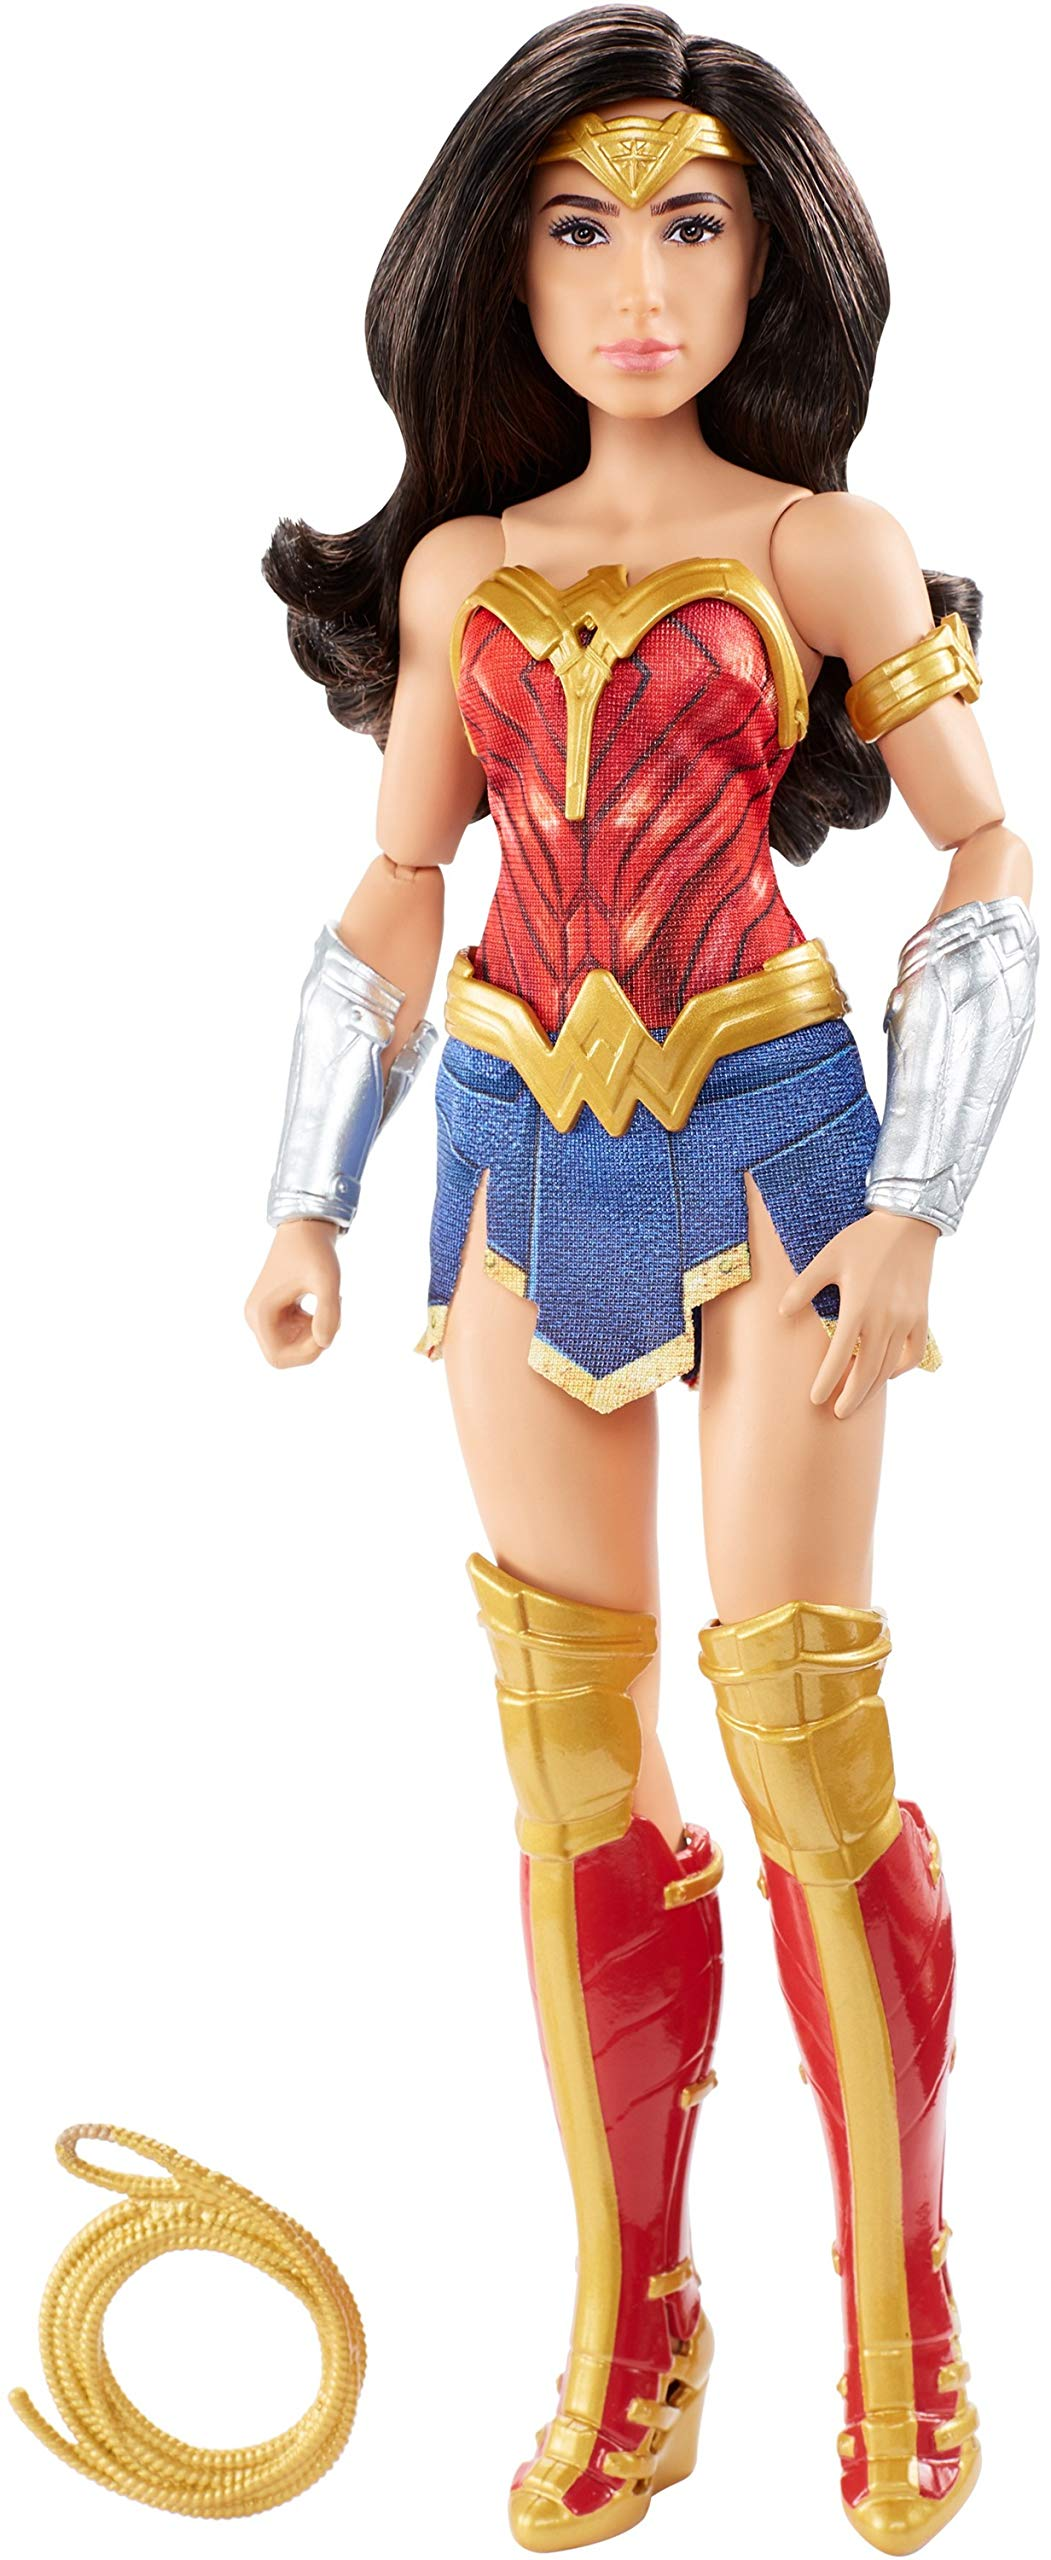 Mattel Wonder Woman 1984 Doll (~12-inch) Wearing Superhero Fashion and Accessories, with Lasso, for 6 Year Olds and Up